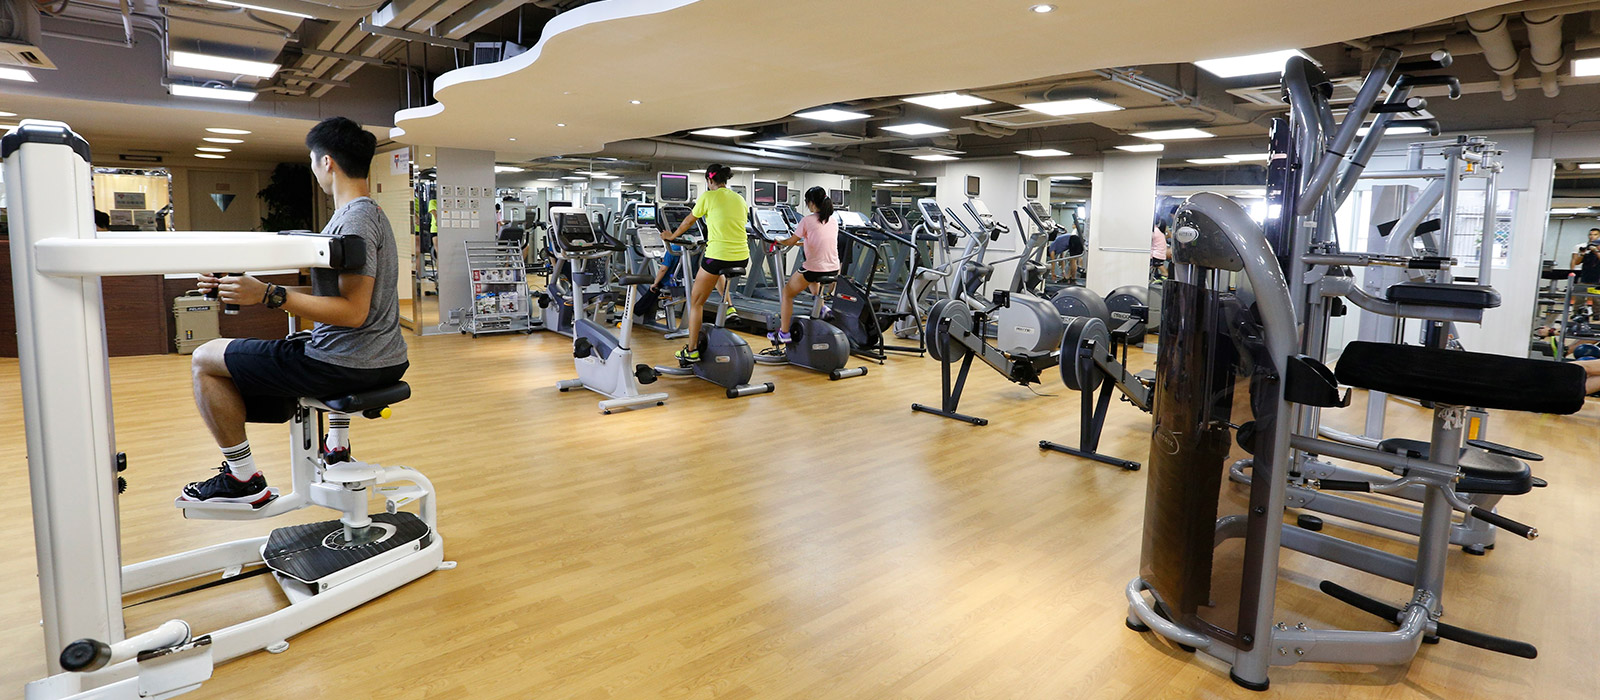 Facilities - Fitness Room, 設施 - 健身室